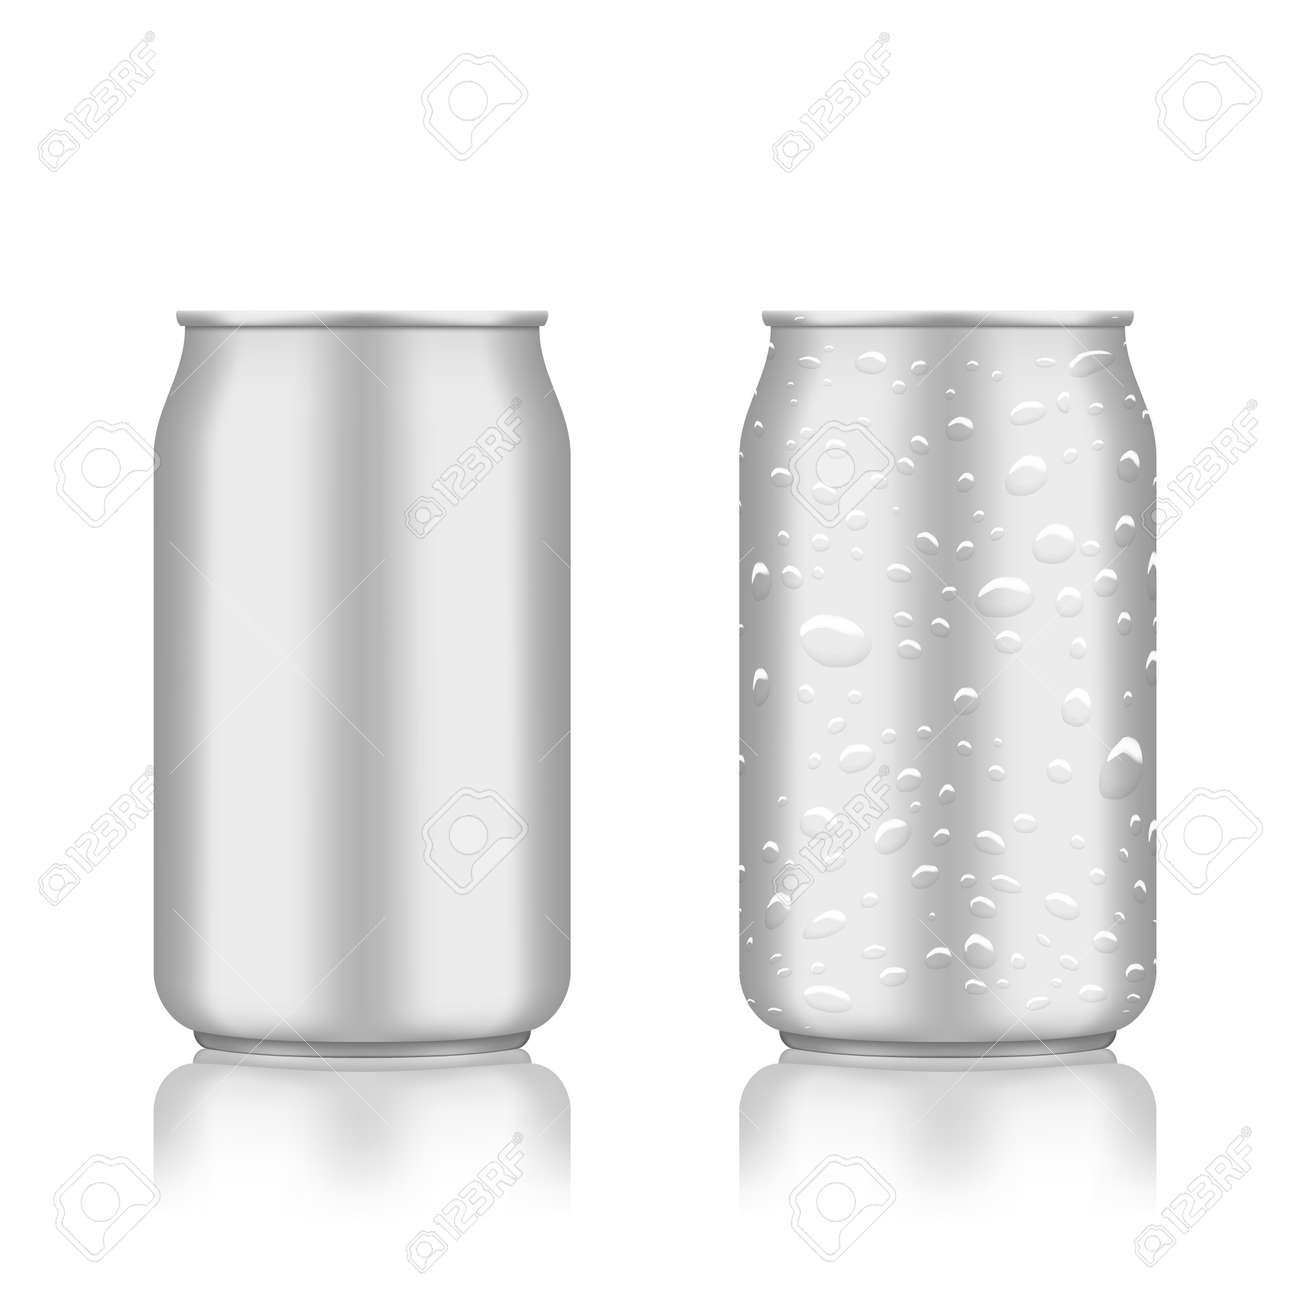 Warm And Cold Clear Aluminum Cans On White - 169413624